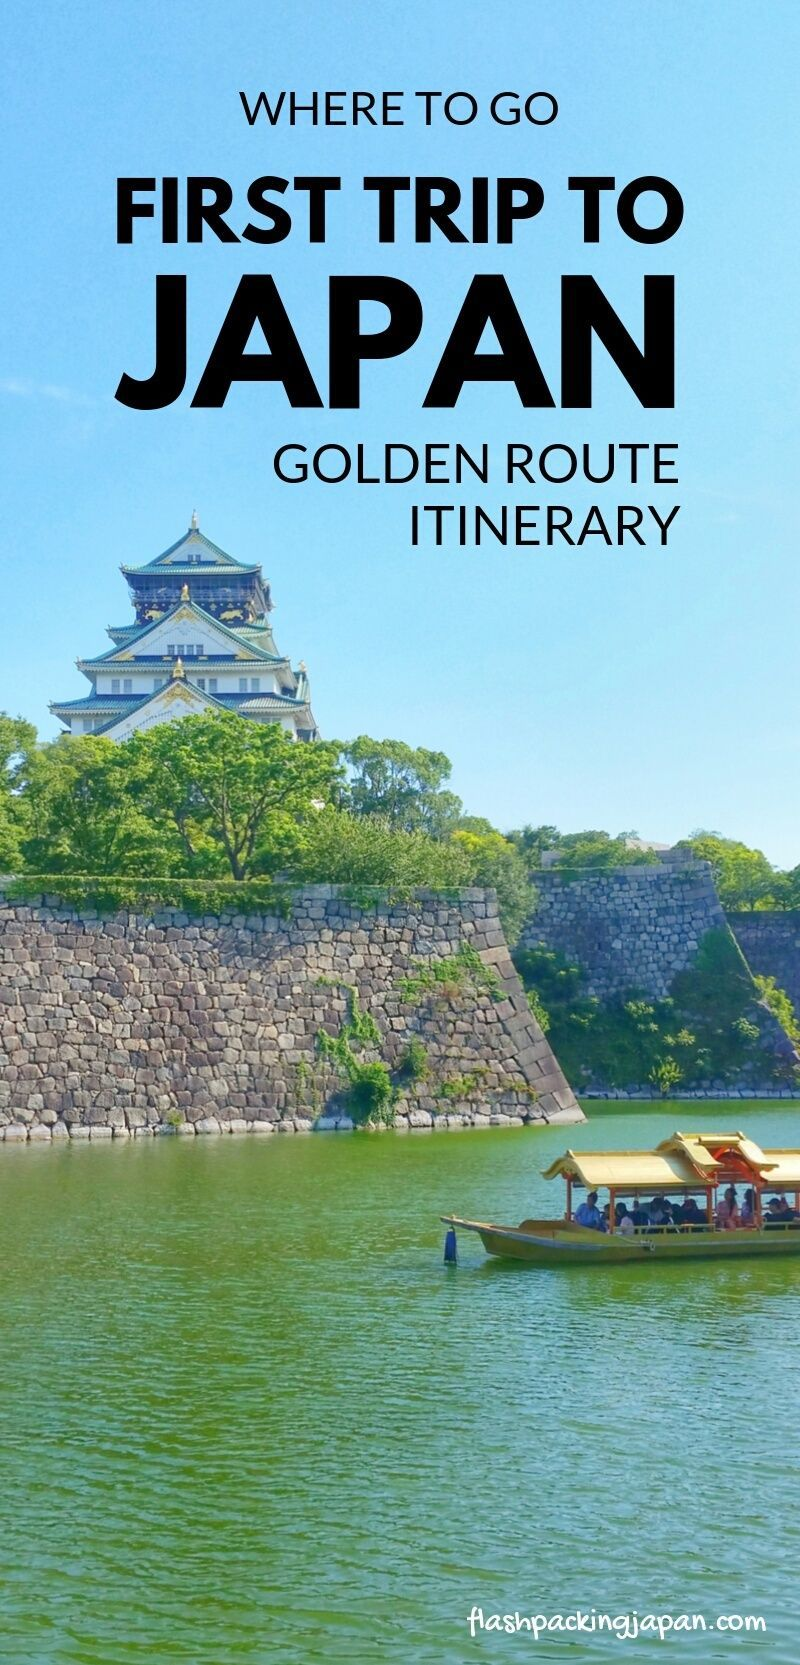 Japan Golden Route itinerary for first trip to Japan for beginners 🗾 Backpacking Japan